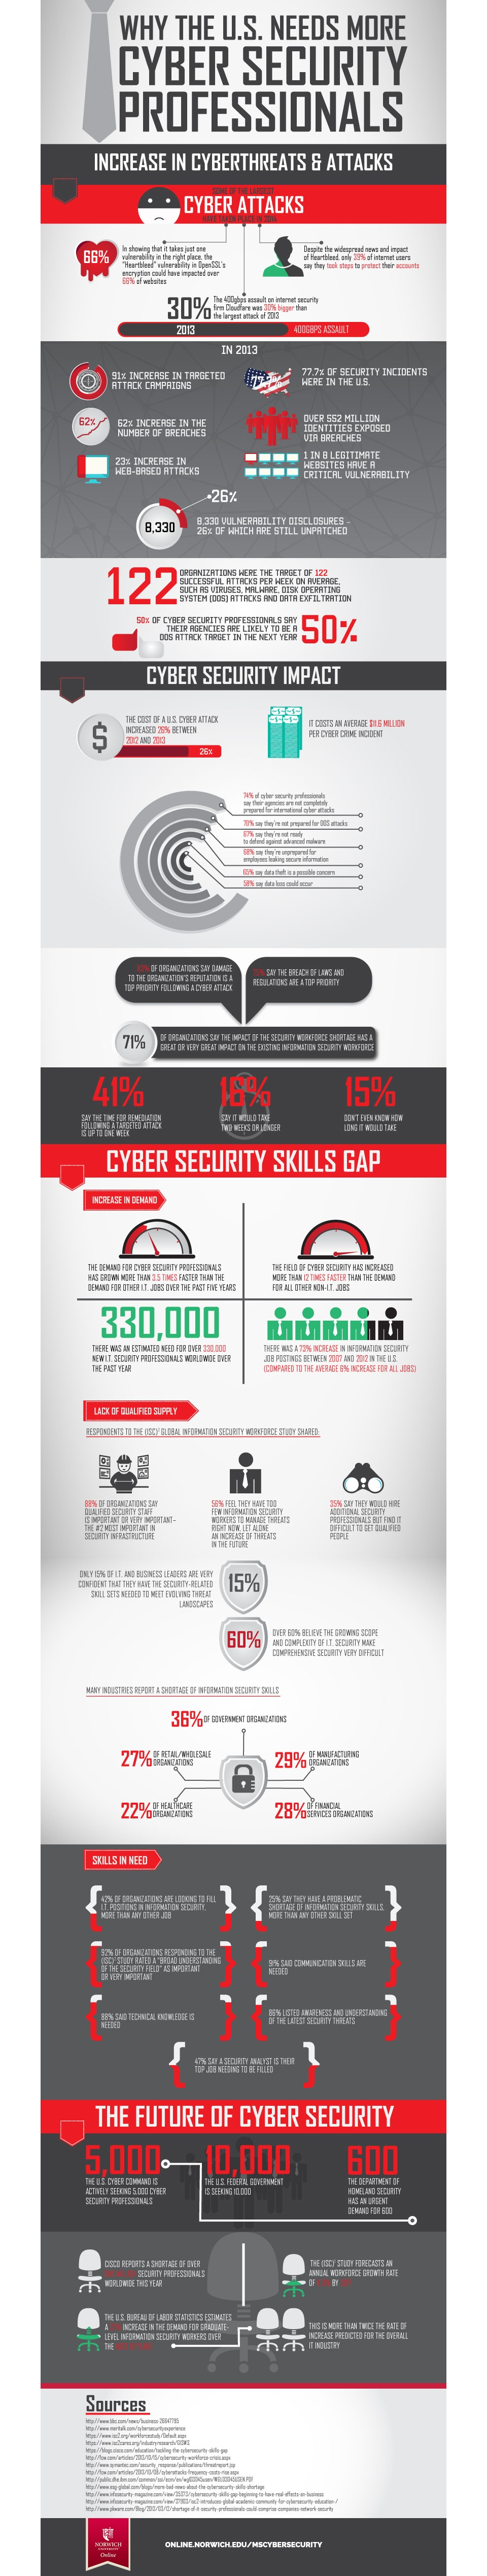 need for cyber professionals infographic image